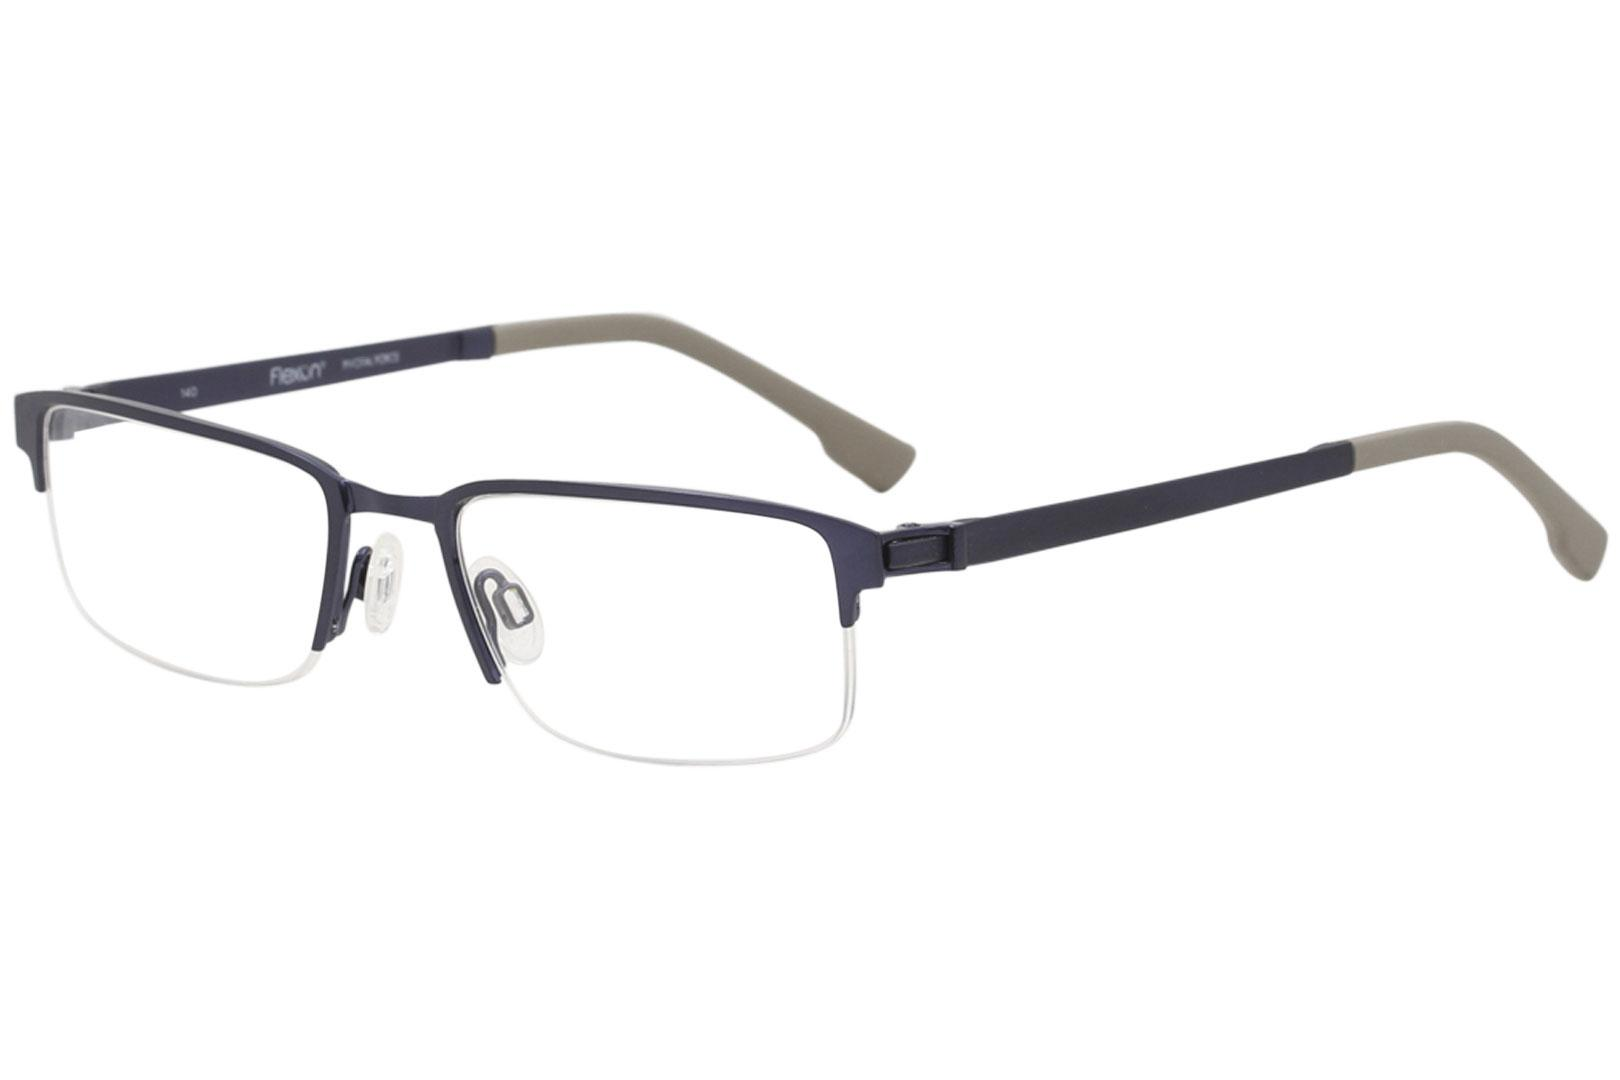 Image of Flexon Eyeglasses E1052 E/1052 412 Brushed Navy Half Rim Optical Frame 53mm - Brushed Navy   412 - Lens 53 Bridge 19 Temple 140mm